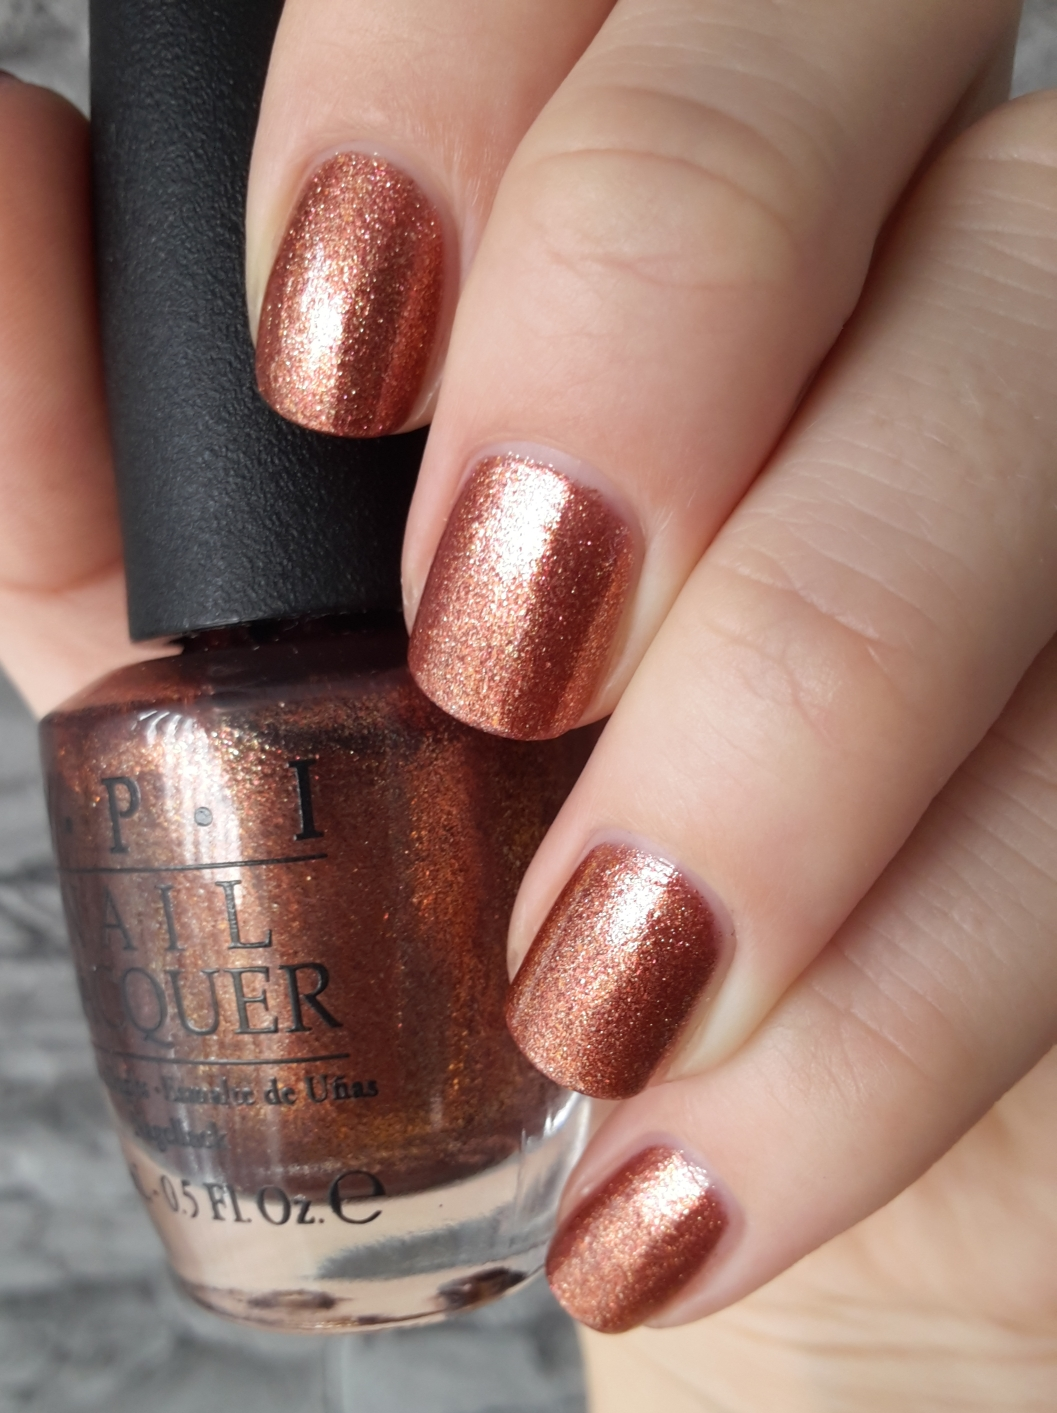 http://swirledpaisley.blogspot.com/2014/09/opi-sprung-lacke-in-farbe-310-oder.html